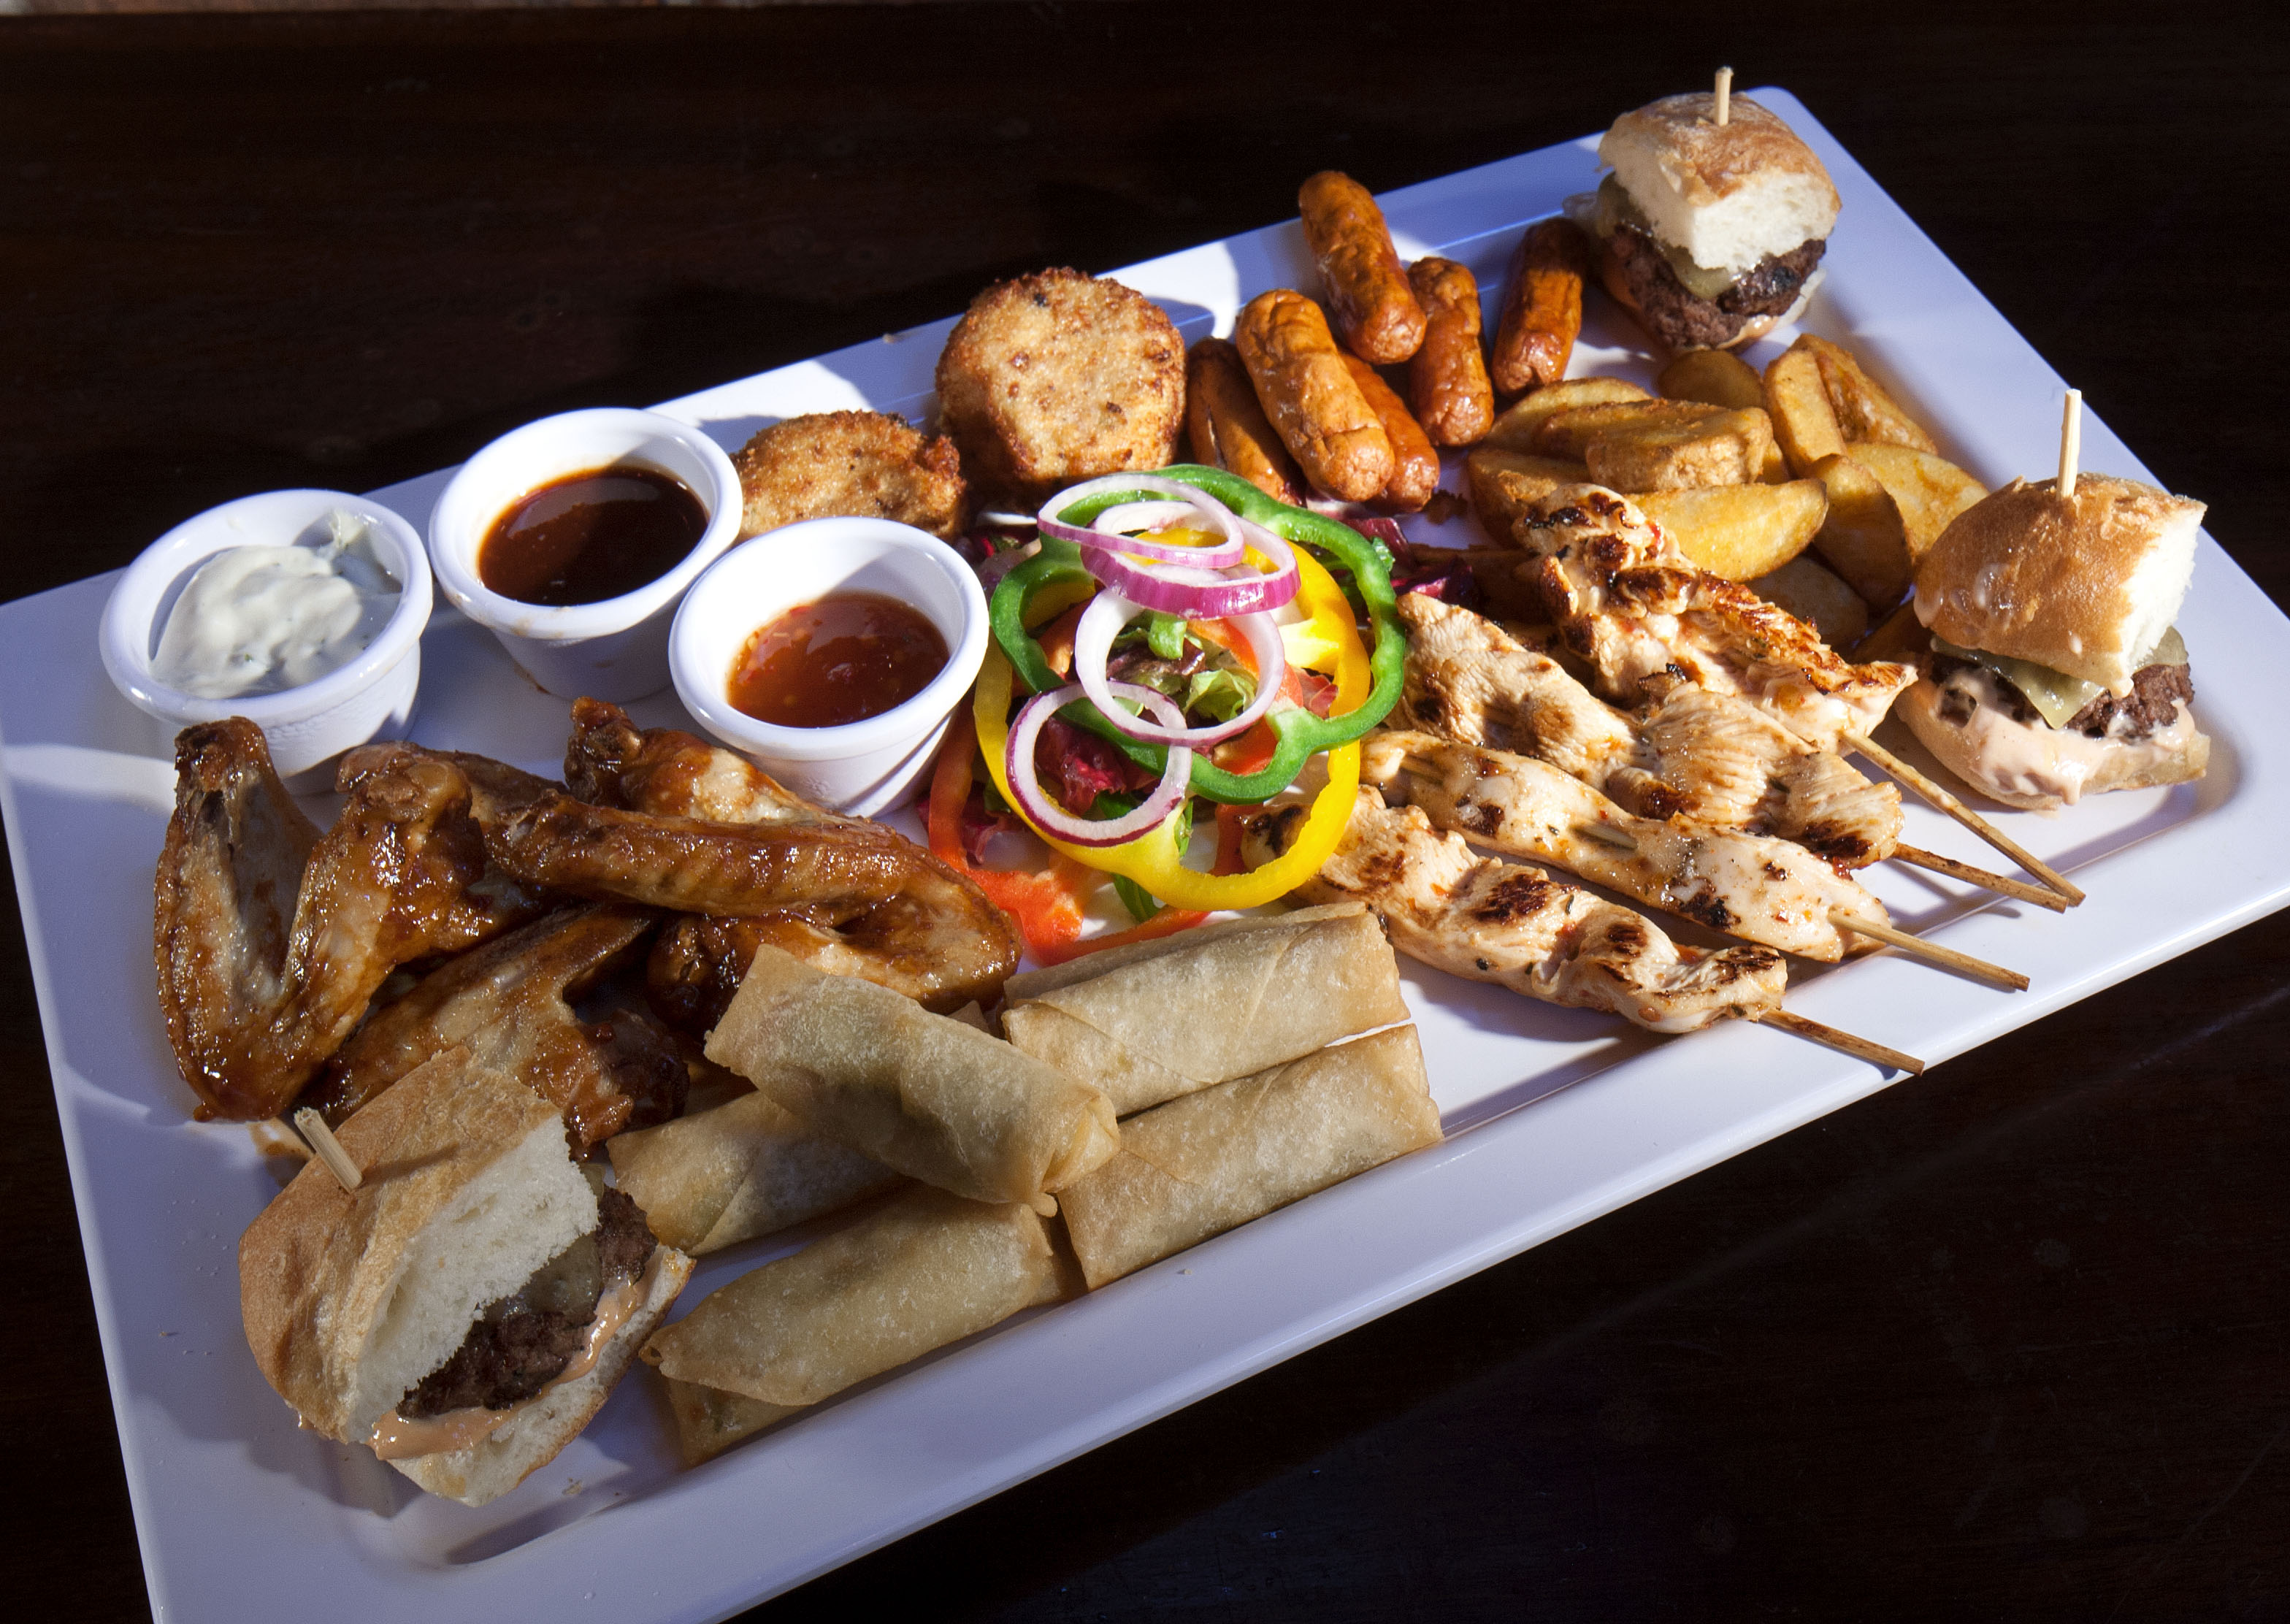 Party Food Platter